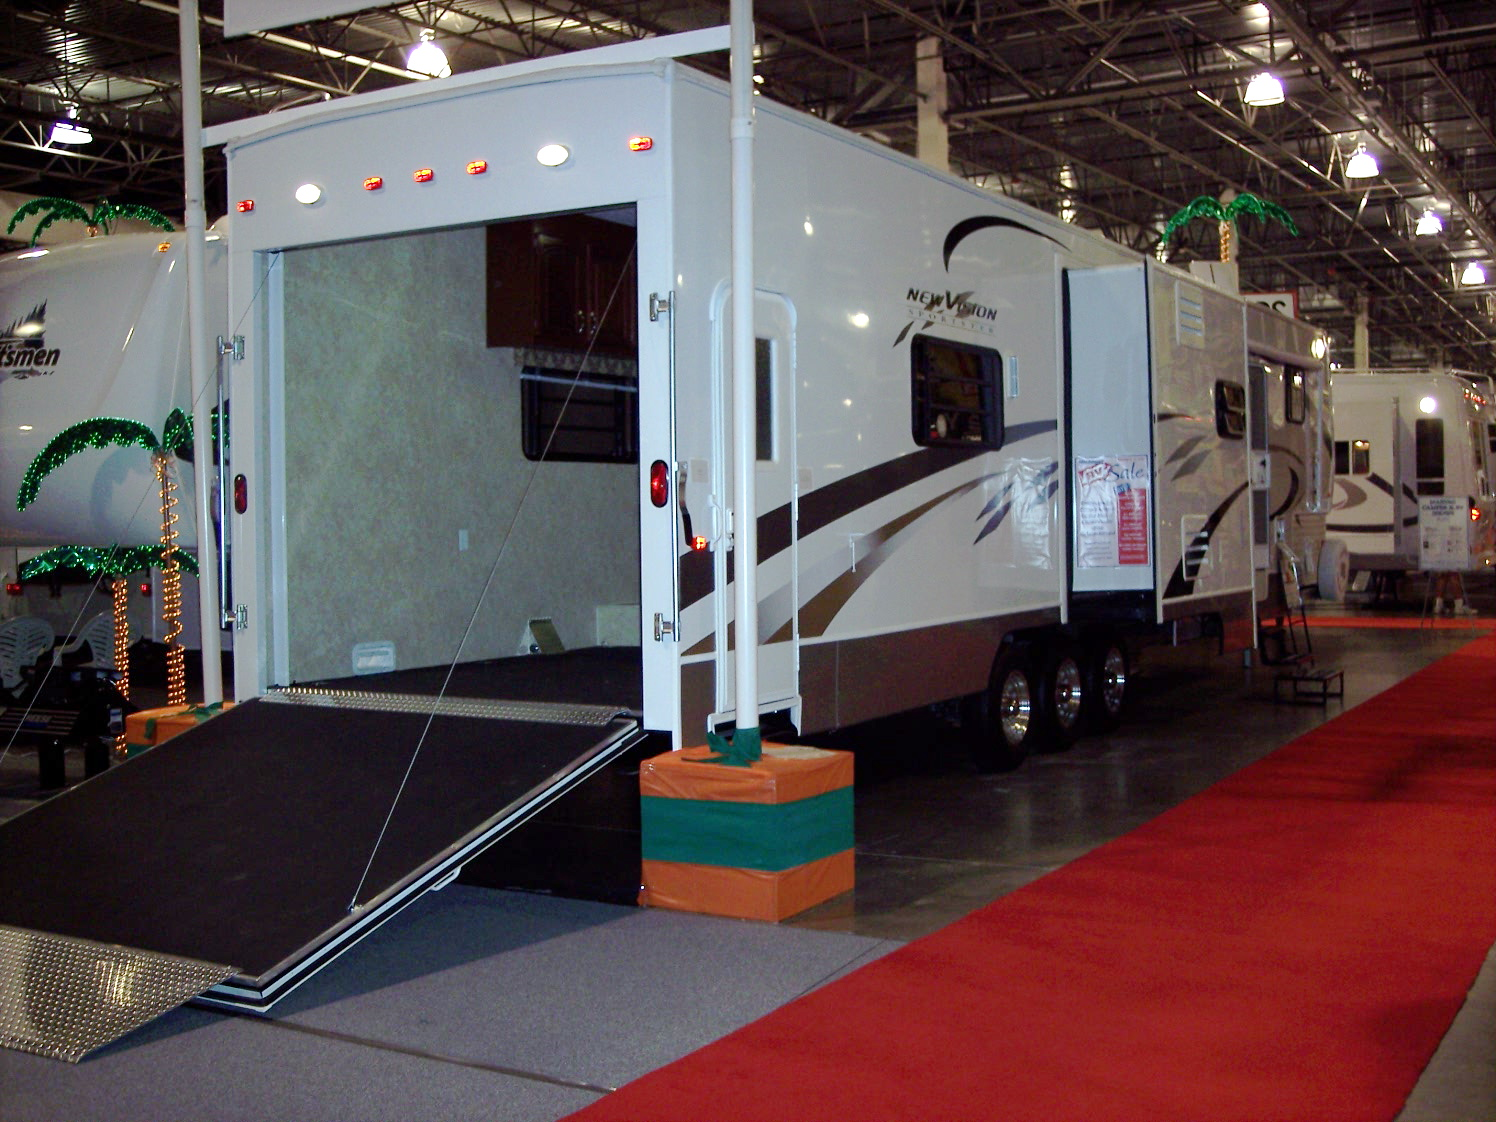 Rocinante: FOR SALE 2006 43 ft K-Z Fifth Wheel RV and 2004